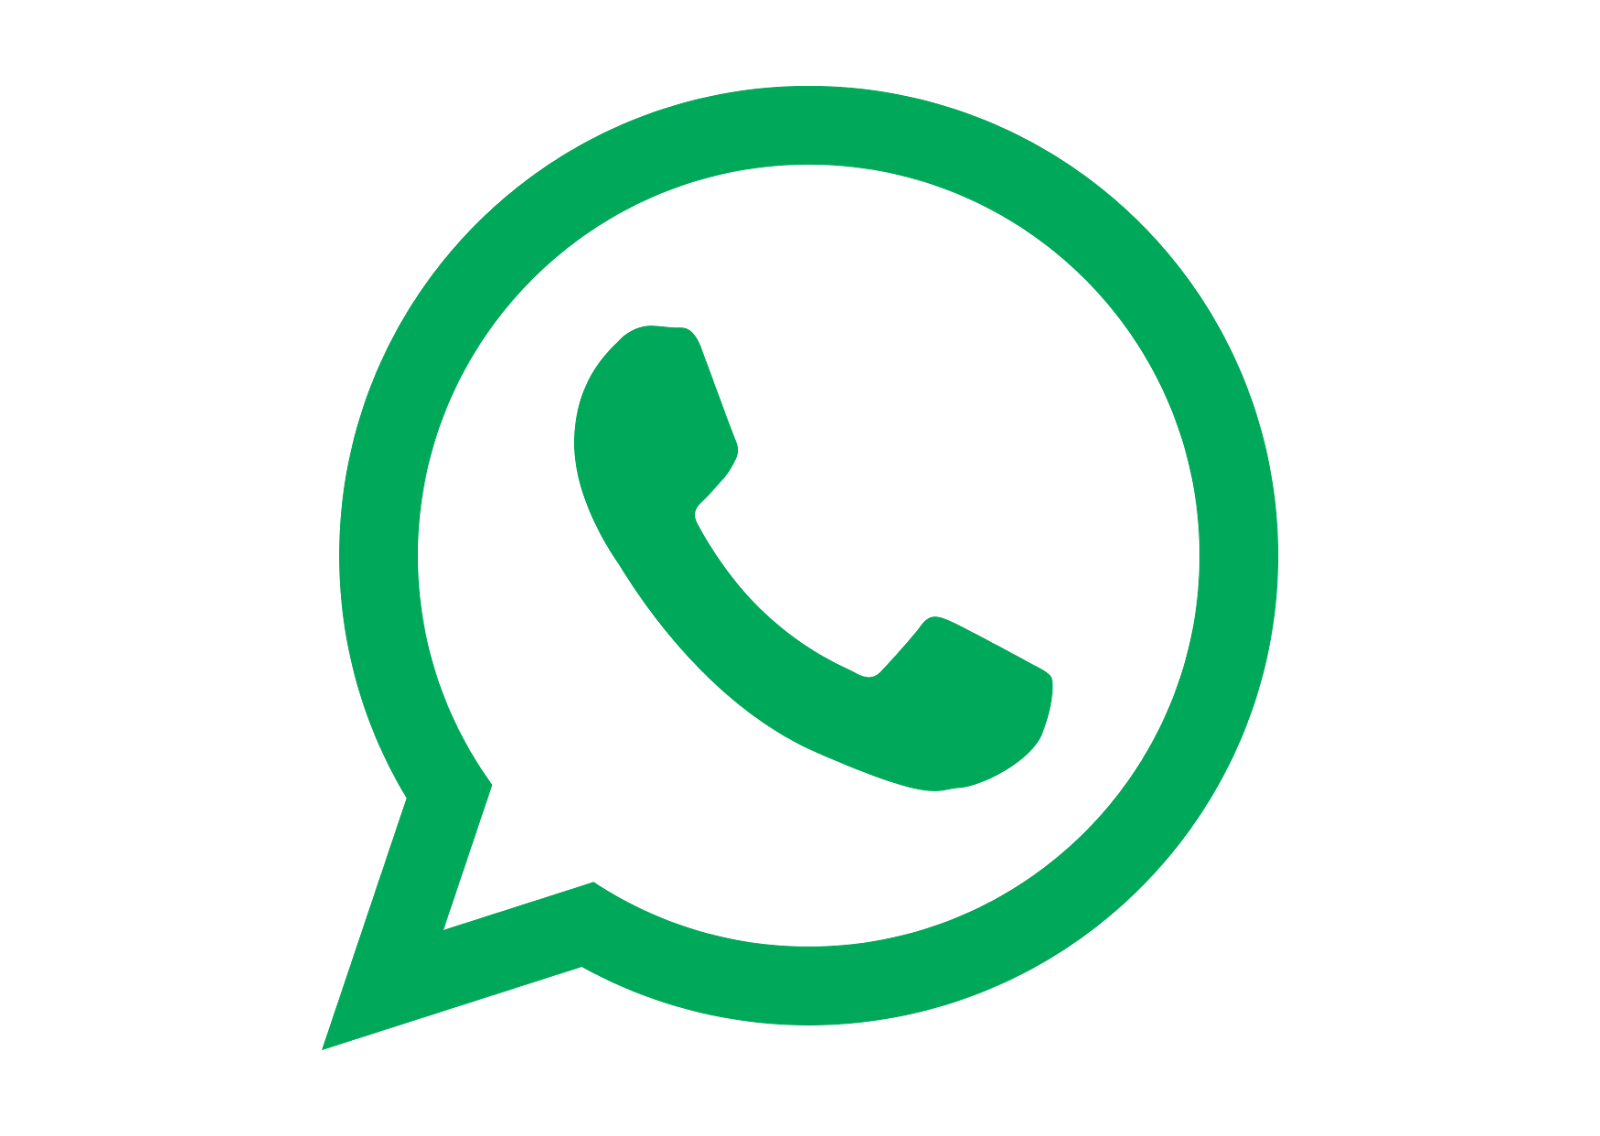 Whatsapp Logo Vector | Logo do whatsapp, Whatsapp png, Simbolo do ...